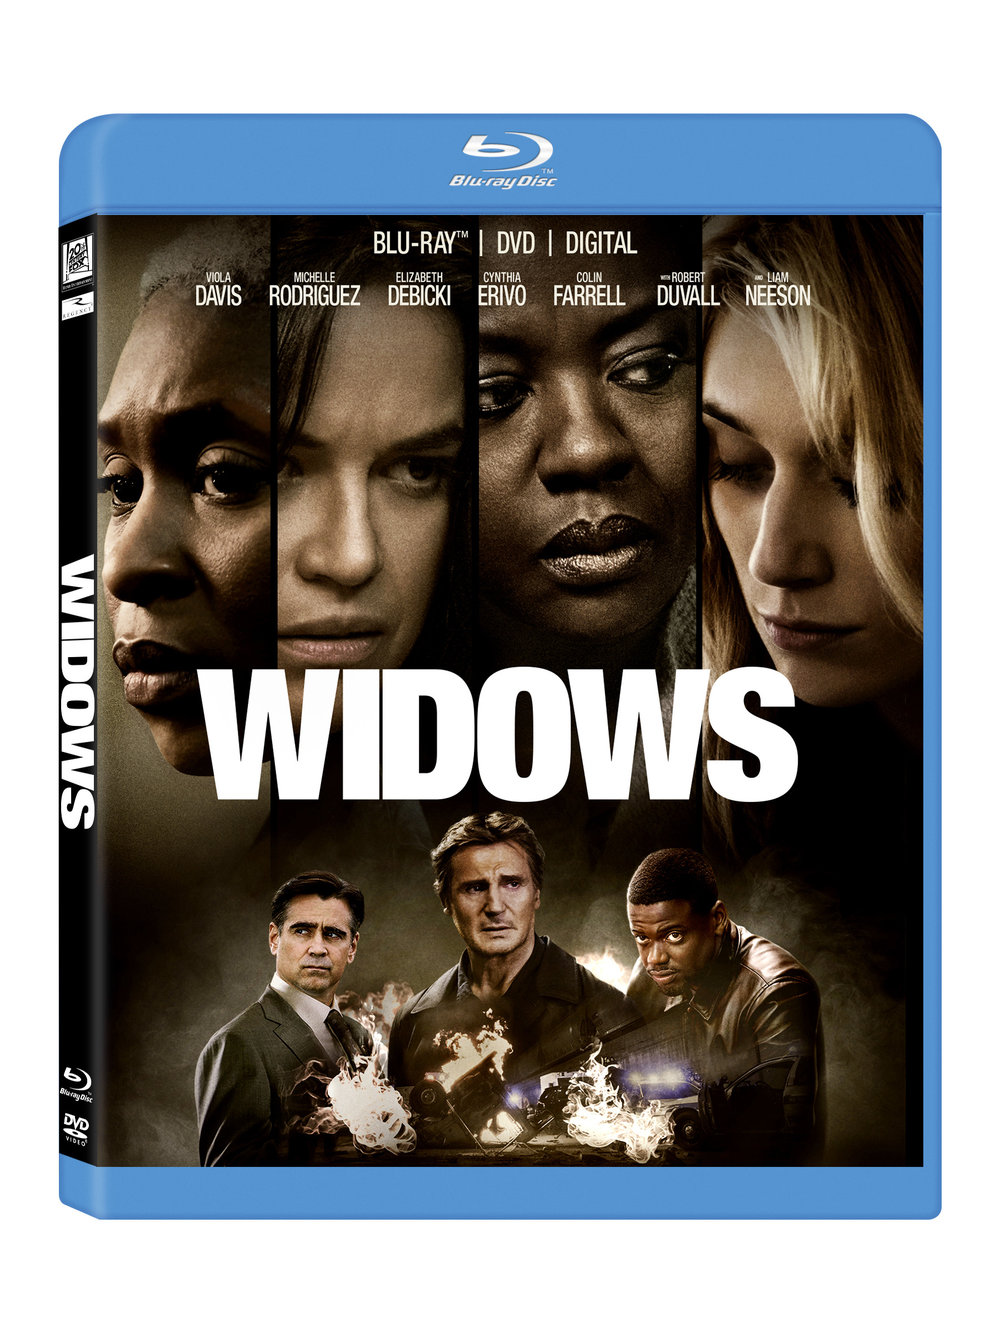 Widows_BD_Spine_01FO[4].jpg